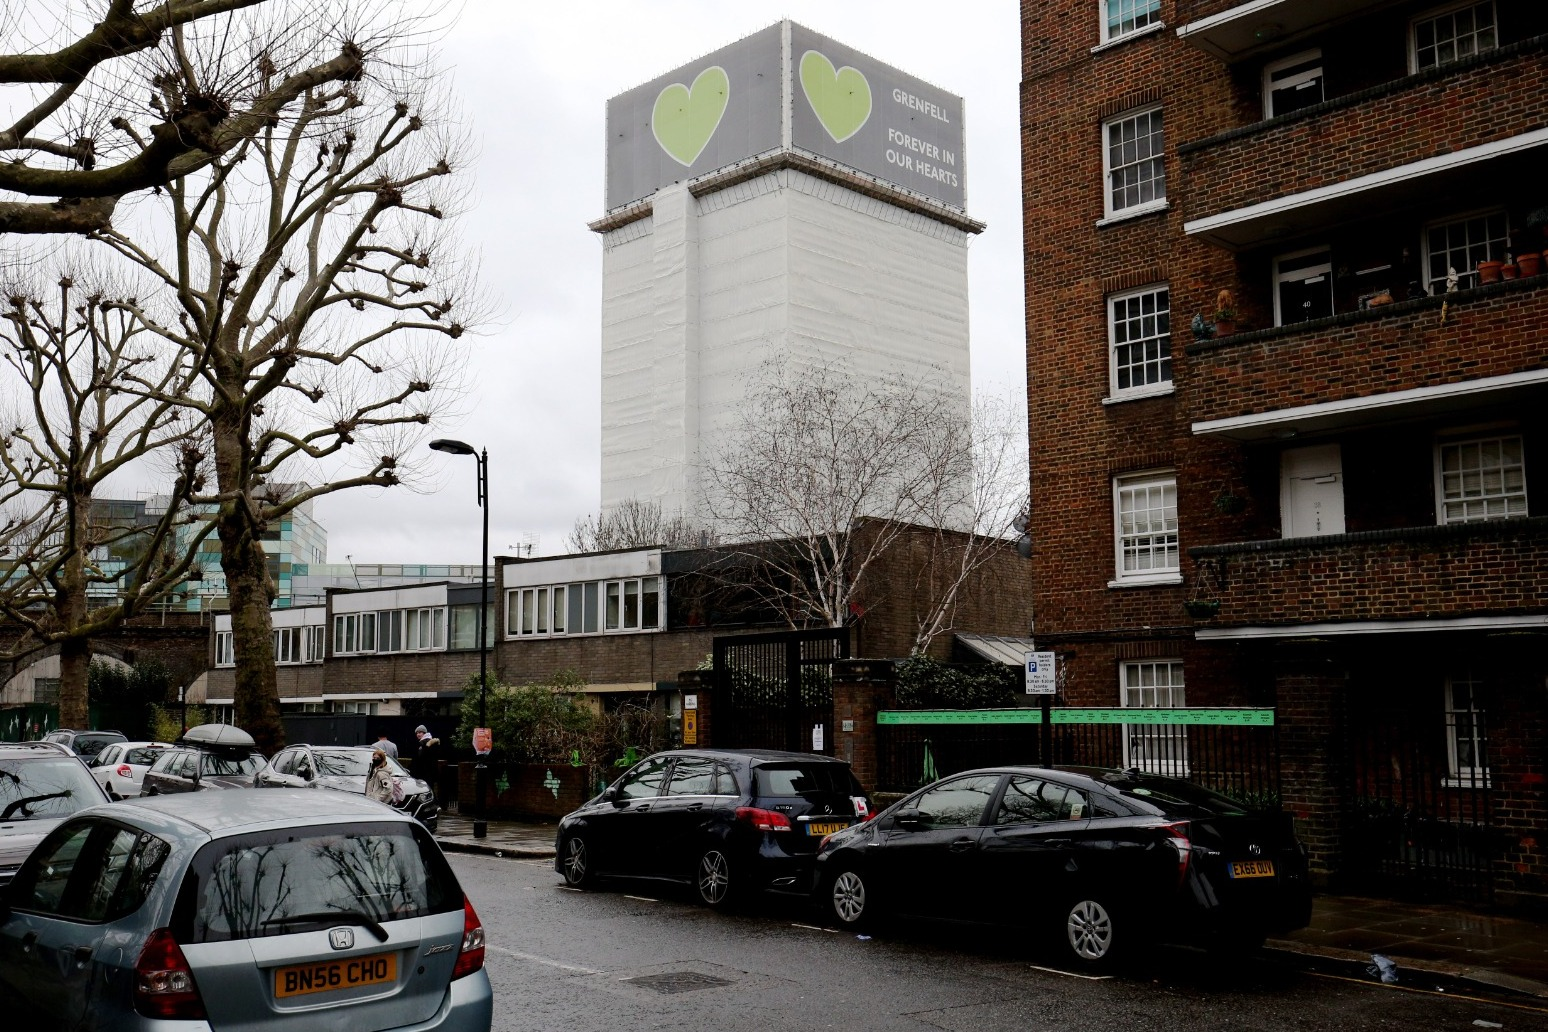 Grenfell group urges Government to remove combustible insulation from schools